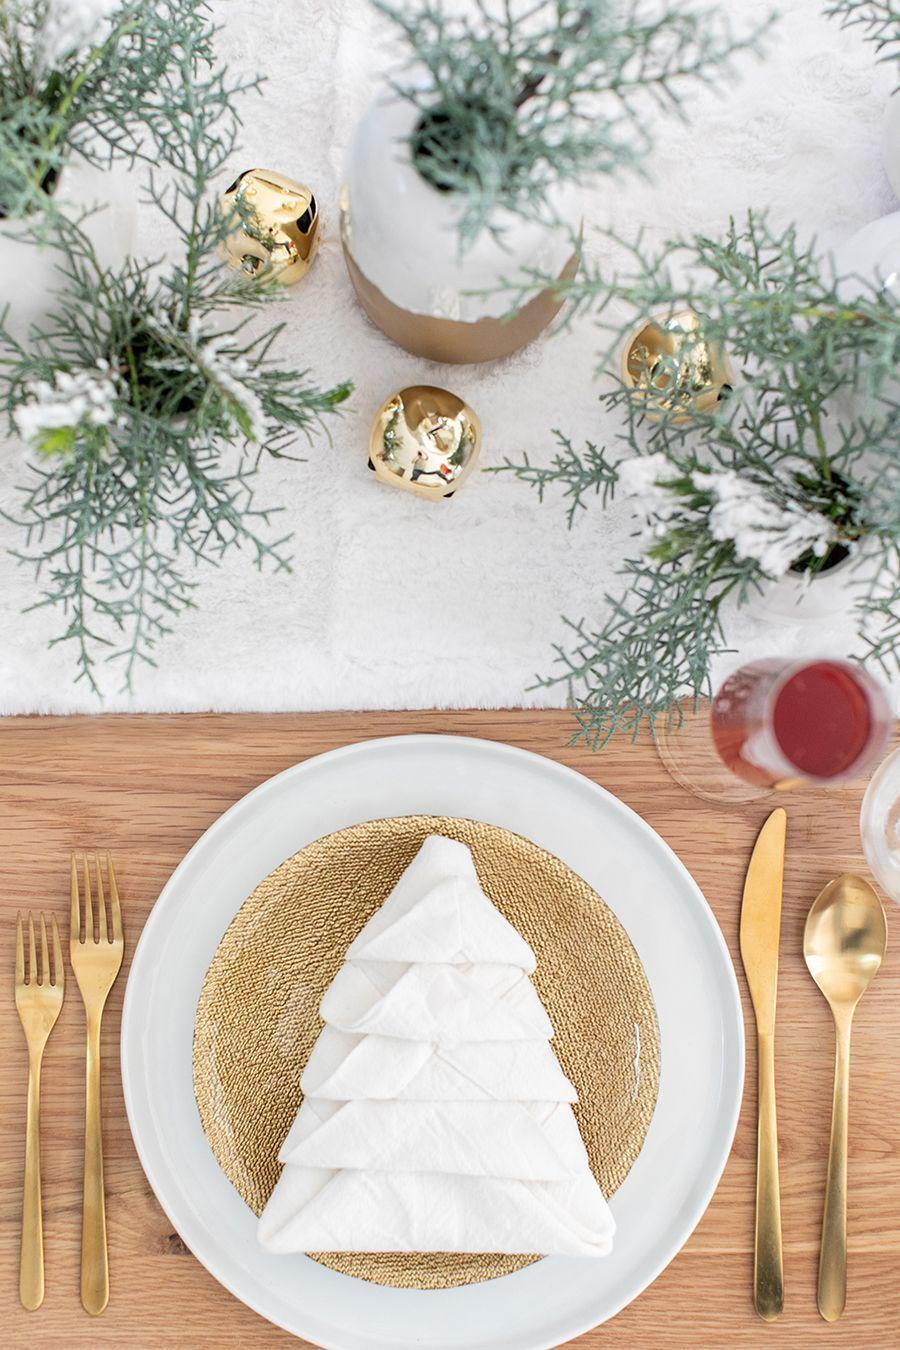 "<p>Wow your guests with this stunning Christmas tree napkin! Believe it or not, it's super easy to pull off—you just need a few large linen napkins to get started.</p><p><strong>Get the tutorial at <a href=""https://sugarandcharm.com/how-to-put-together-a-charming-christmas-brunch"" rel=""nofollow noopener"" target=""_blank"" data-ylk=""slk:Sugar and Charm"" class=""link rapid-noclick-resp"">Sugar and Charm</a>.</strong></p><p><strong><a class=""link rapid-noclick-resp"" href=""https://www.amazon.com/Berglander-Flatware-Stainless-Titanium-Silverware/dp/B07536QR2Y?tag=syn-yahoo-20&ascsubtag=%5Bartid%7C10050.g.644%5Bsrc%7Cyahoo-us"" rel=""nofollow noopener"" target=""_blank"" data-ylk=""slk:SHOP GOLD FLATWARE"">SHOP GOLD FLATWARE</a></strong></p>"